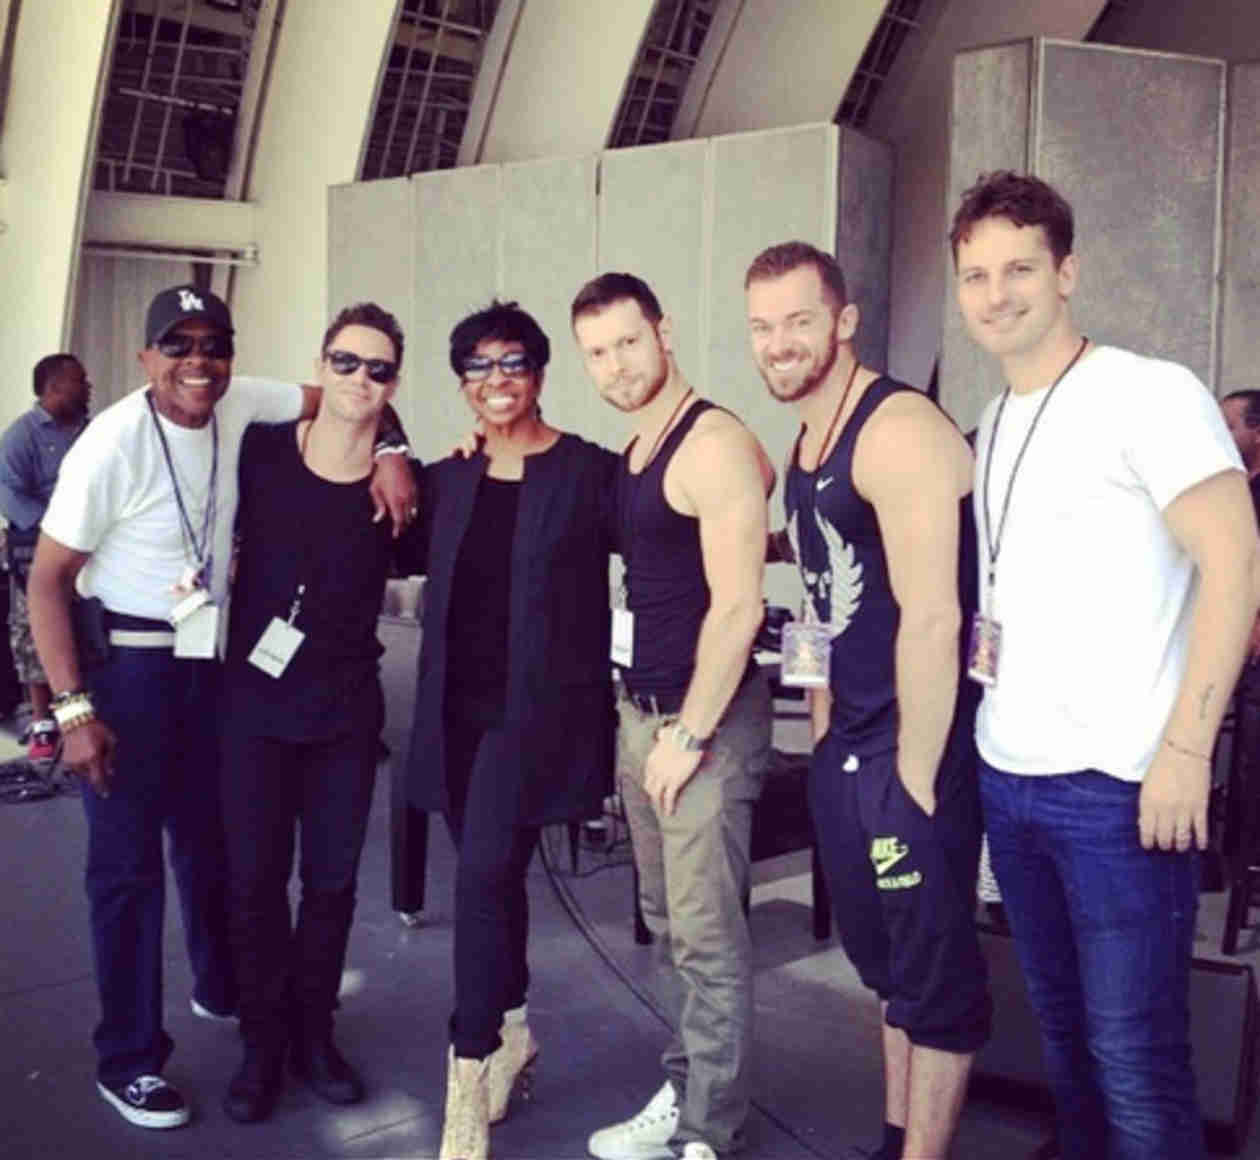 DWTS Reunion! Gladys Knight Dances With Tristan MacManus and Pros (PHOTOS, VIDEO)